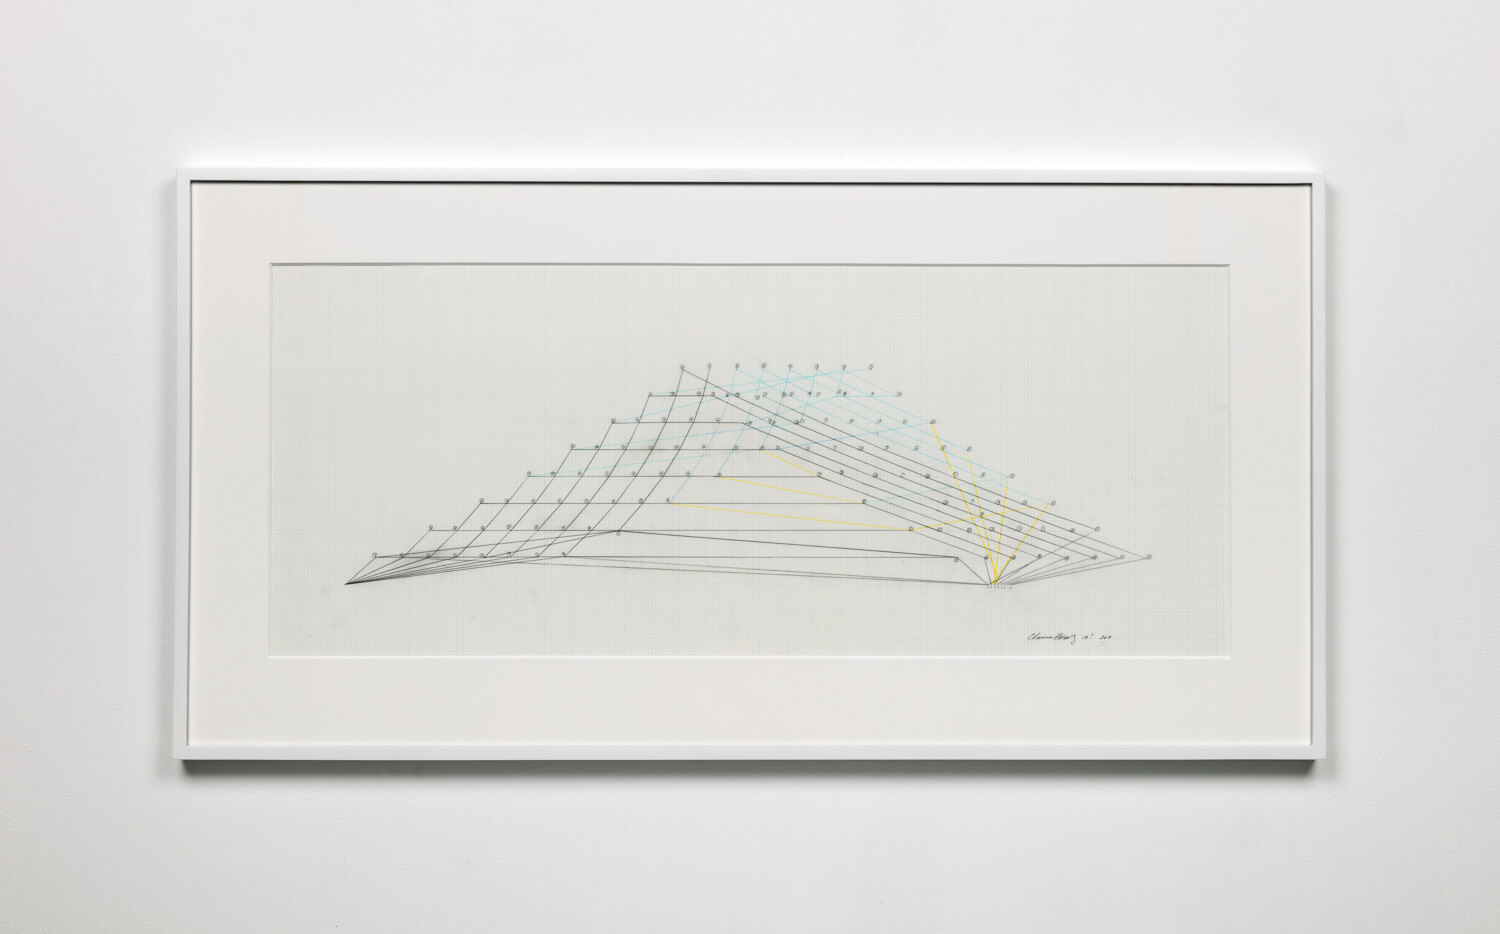 Horwitz, Structure for Slices, 1978-2010 (CH 78.001)(#340)